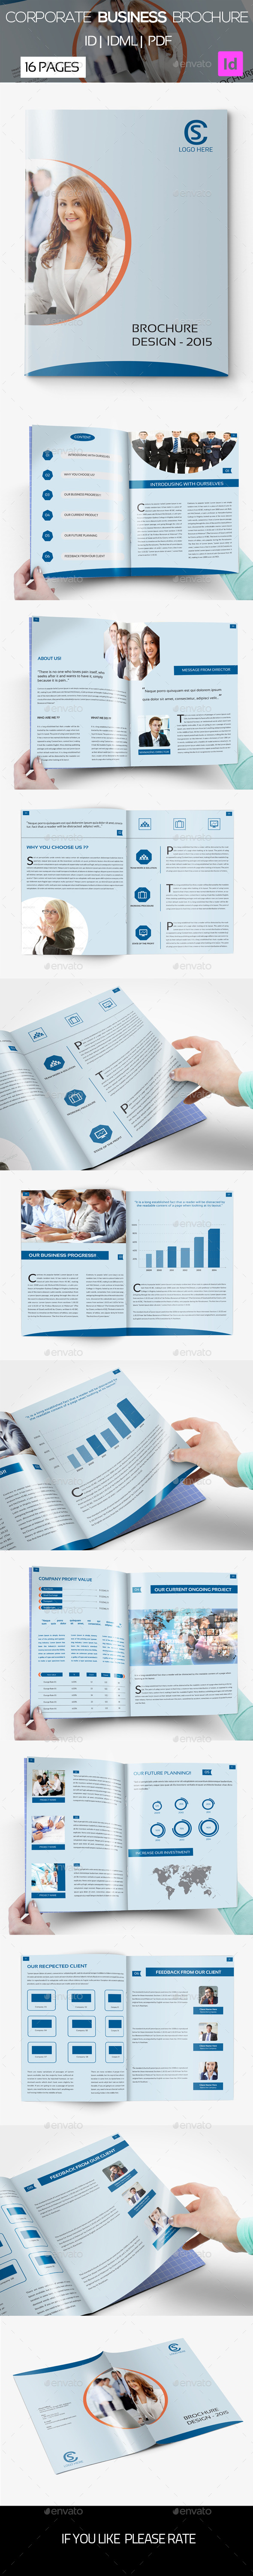 16 pages Corporate Business Brochure  02 - Corporate Brochures